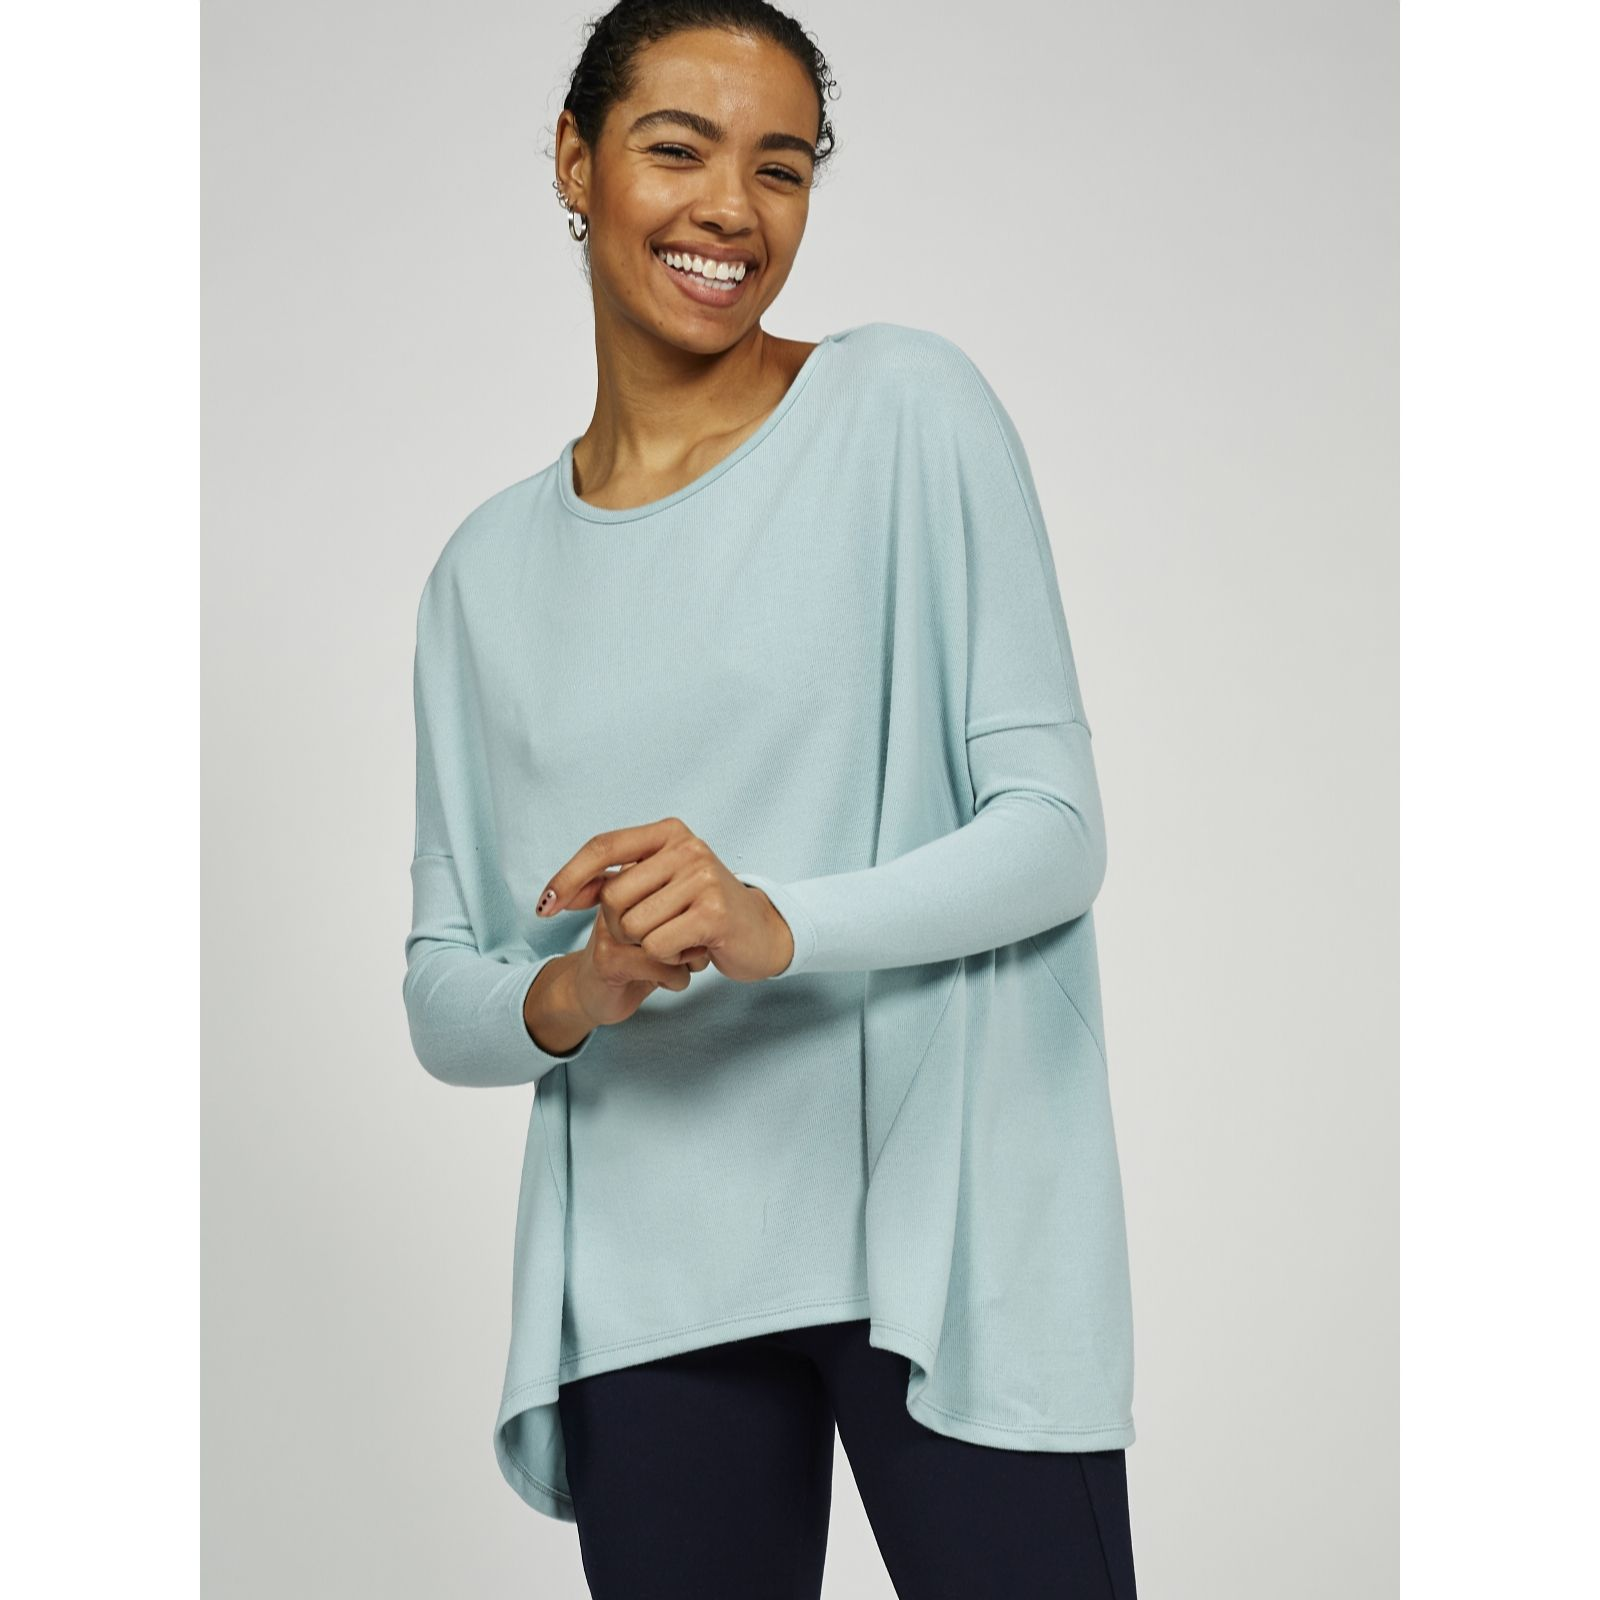 d7ca399f82bda Kim   Co Soft Touch Long Sleeve Godet Insert Tunic - QVC UK